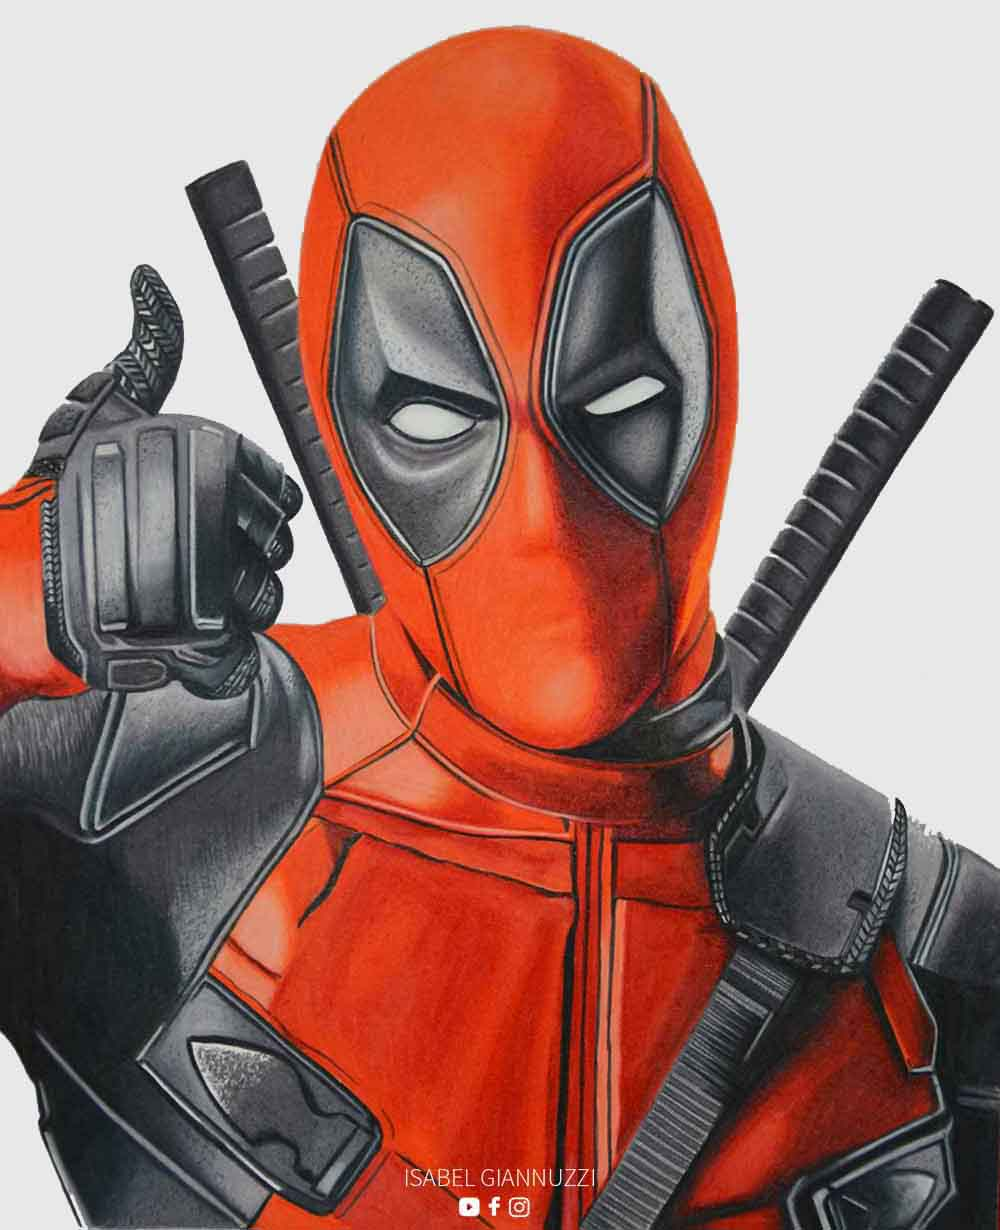 Drawing Deadpool | Marvel Drawings - Isabel Giannuzzi Art ...Deadpool Sketch